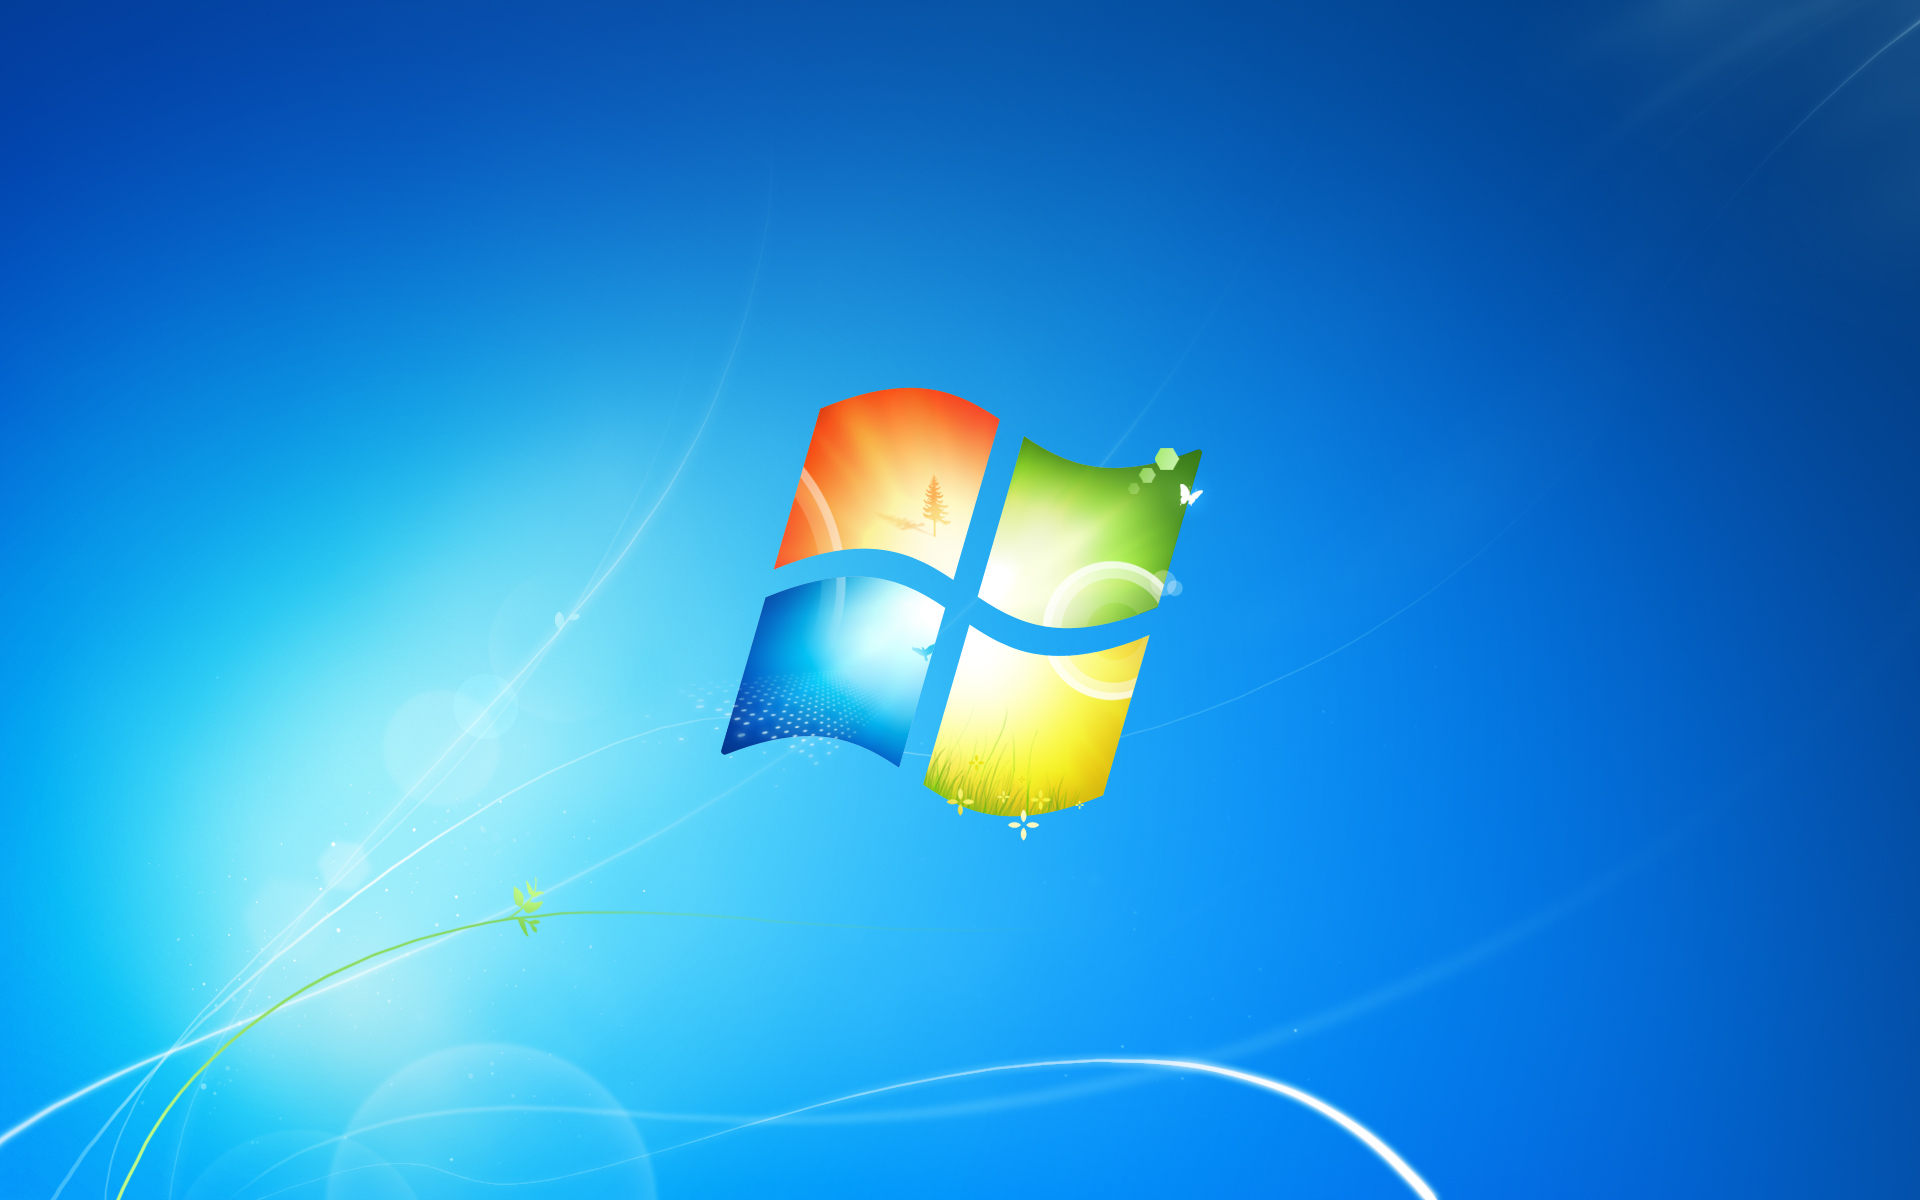 Windows 7 build 7232 leaks, with new wallpaper